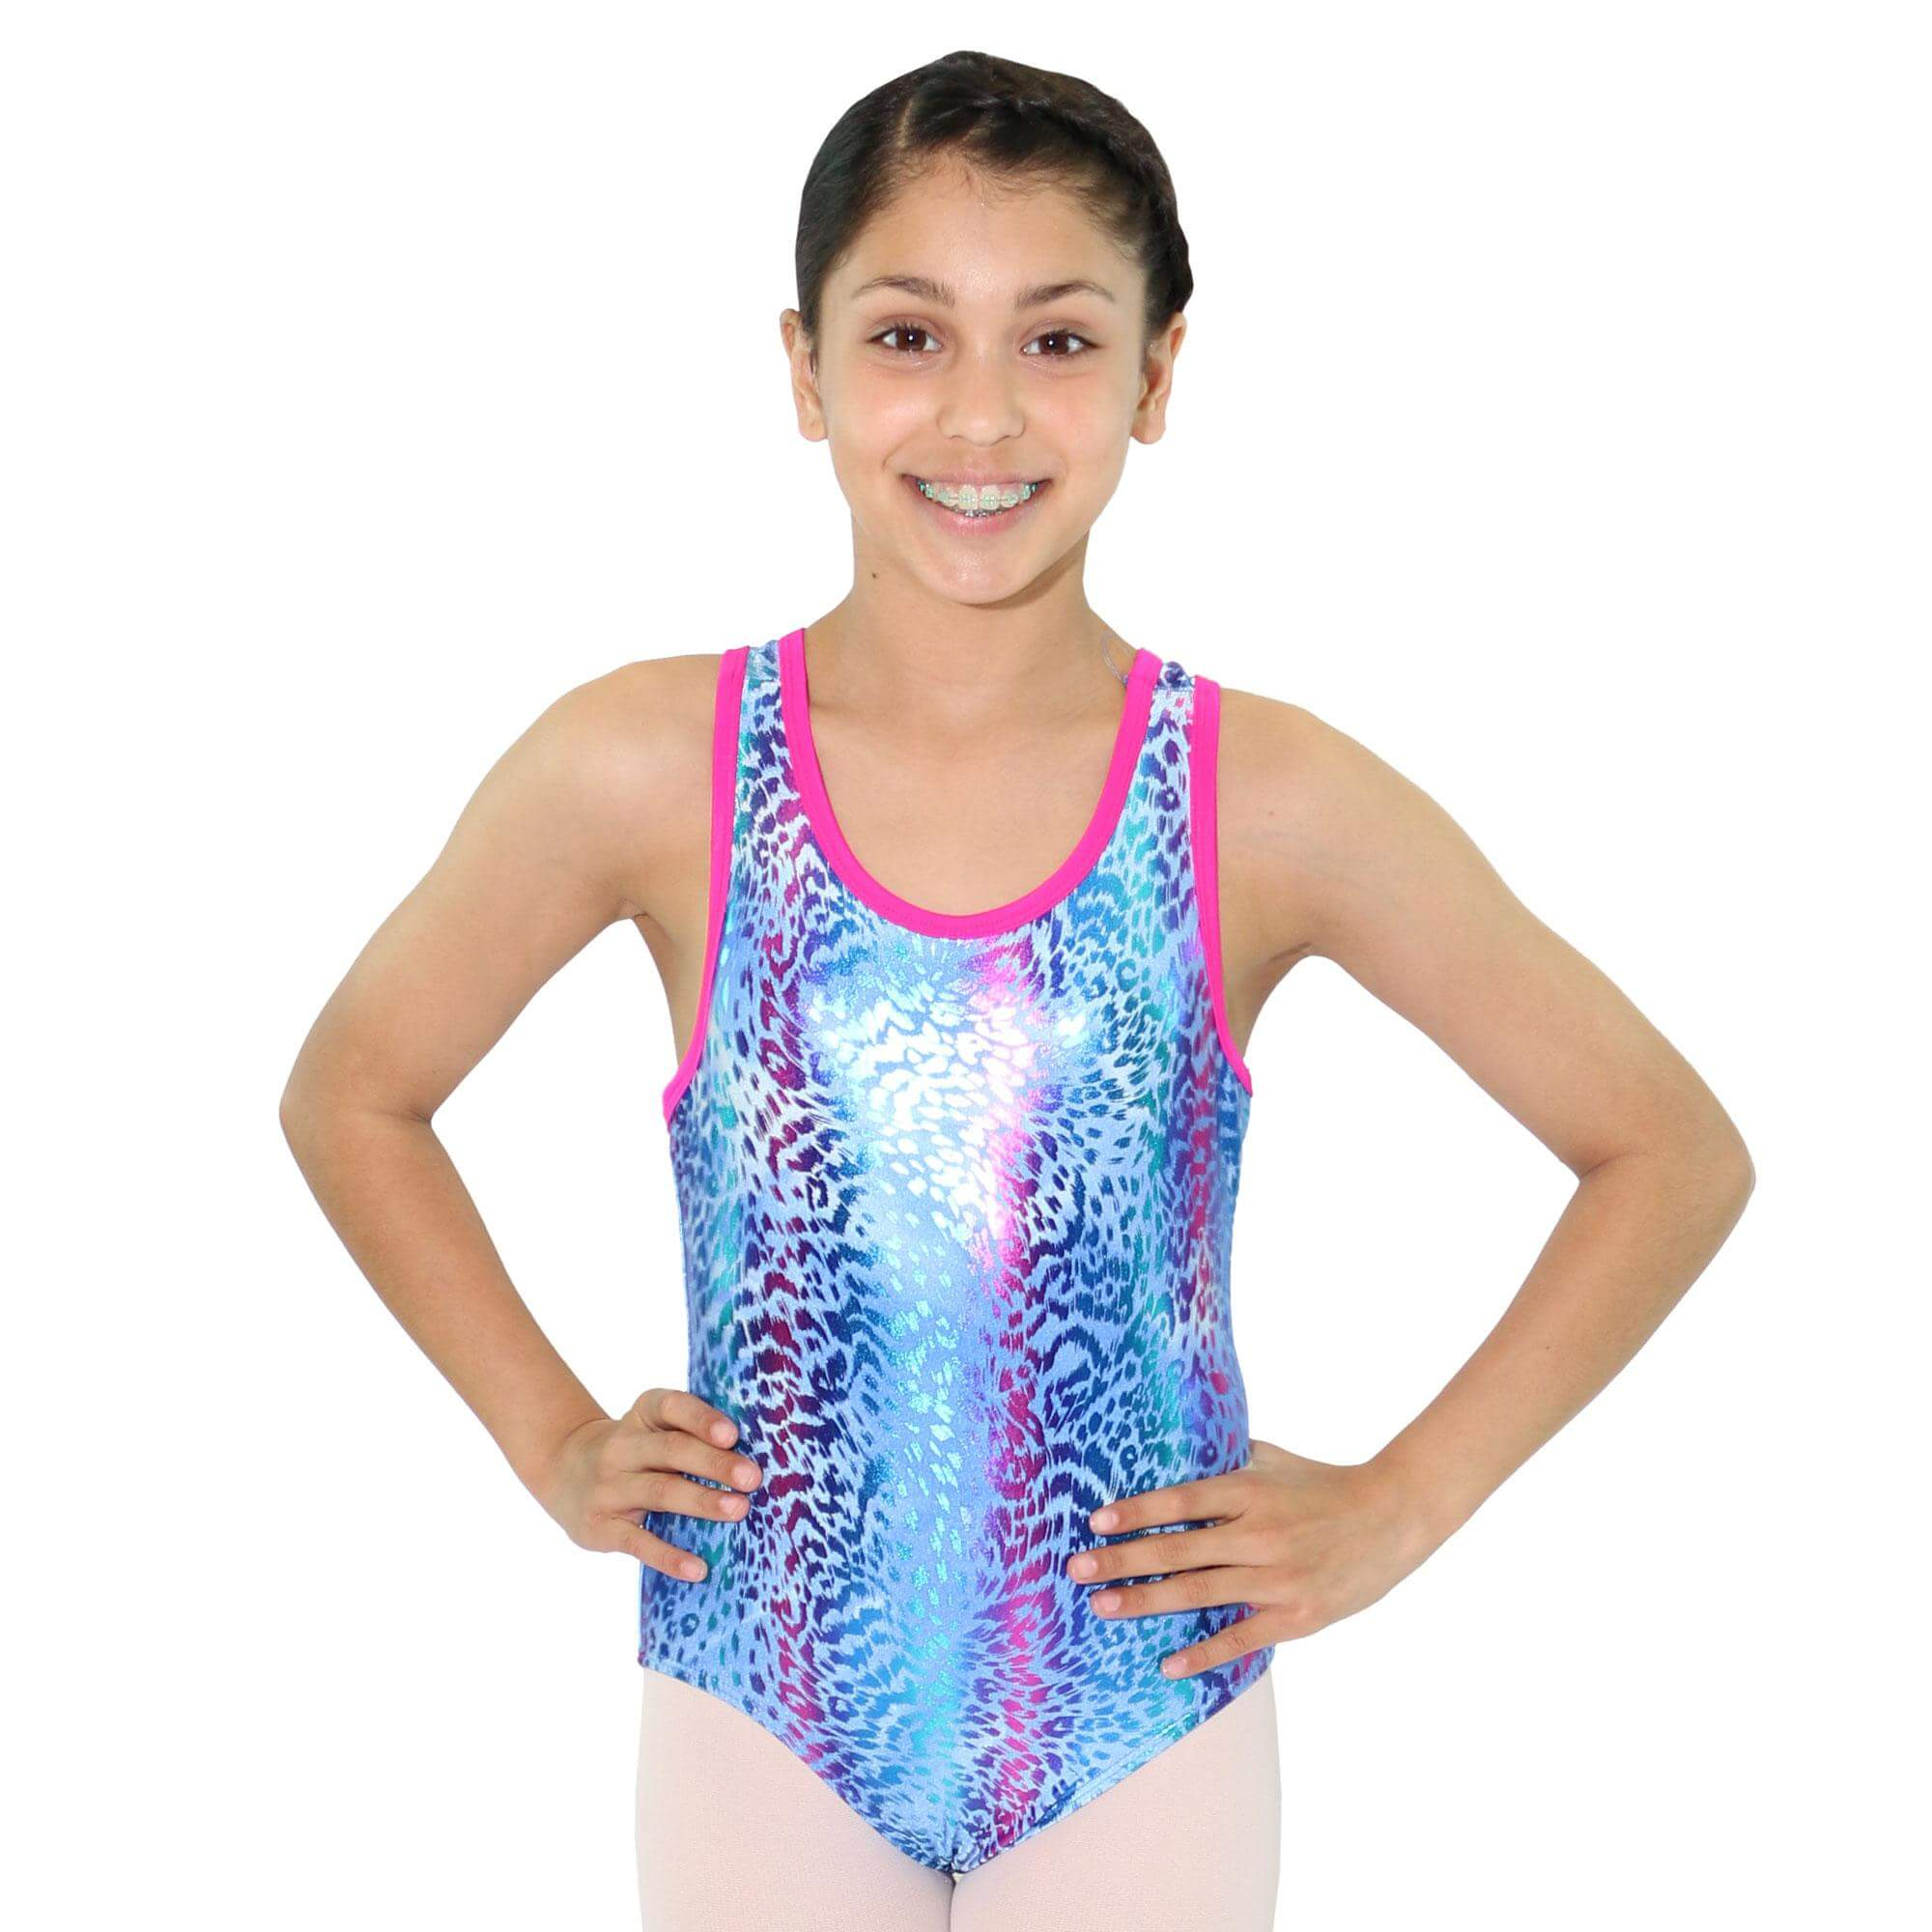 Reflectionz Dancewear And Gymnastics Wear Reflectionz At